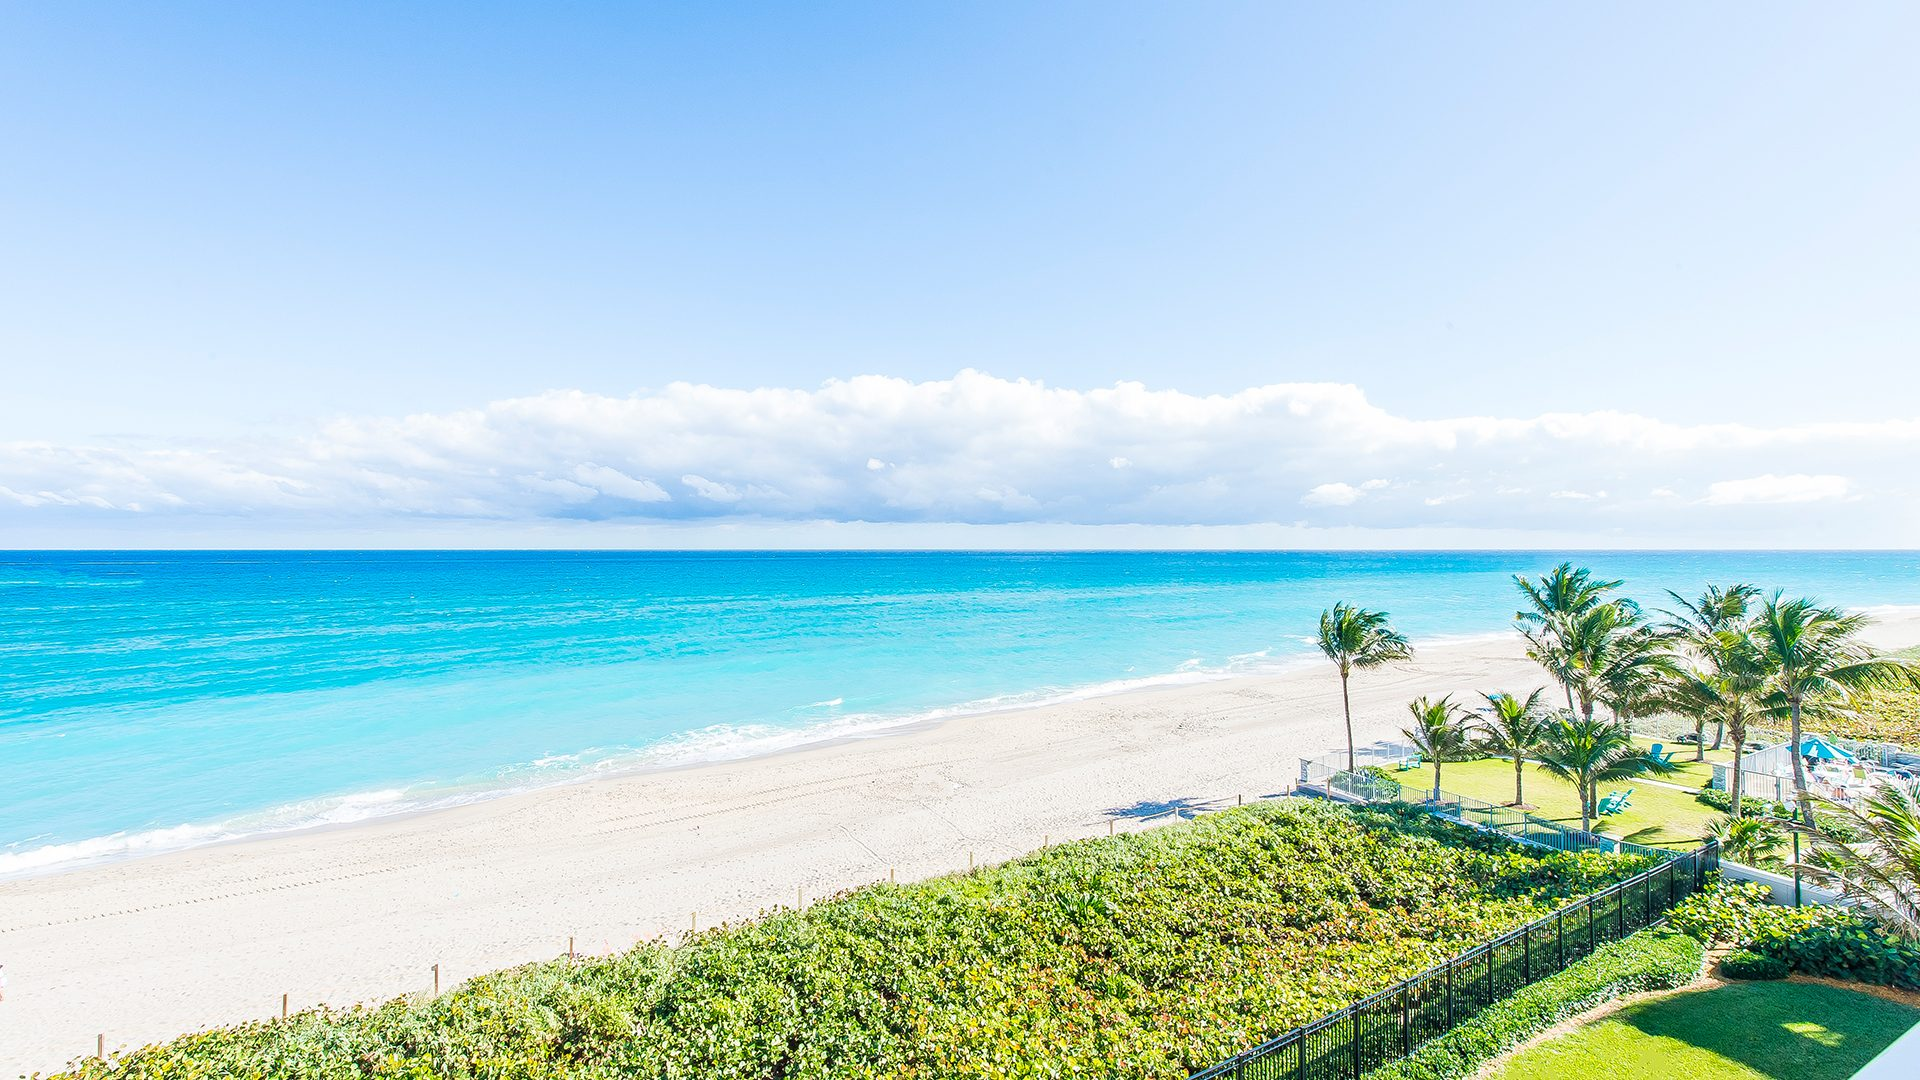 Ocean Views from Residence 507 at Bellaria, Luxury Oceanfront Condominiums in Palm Beach, Florida 33480.